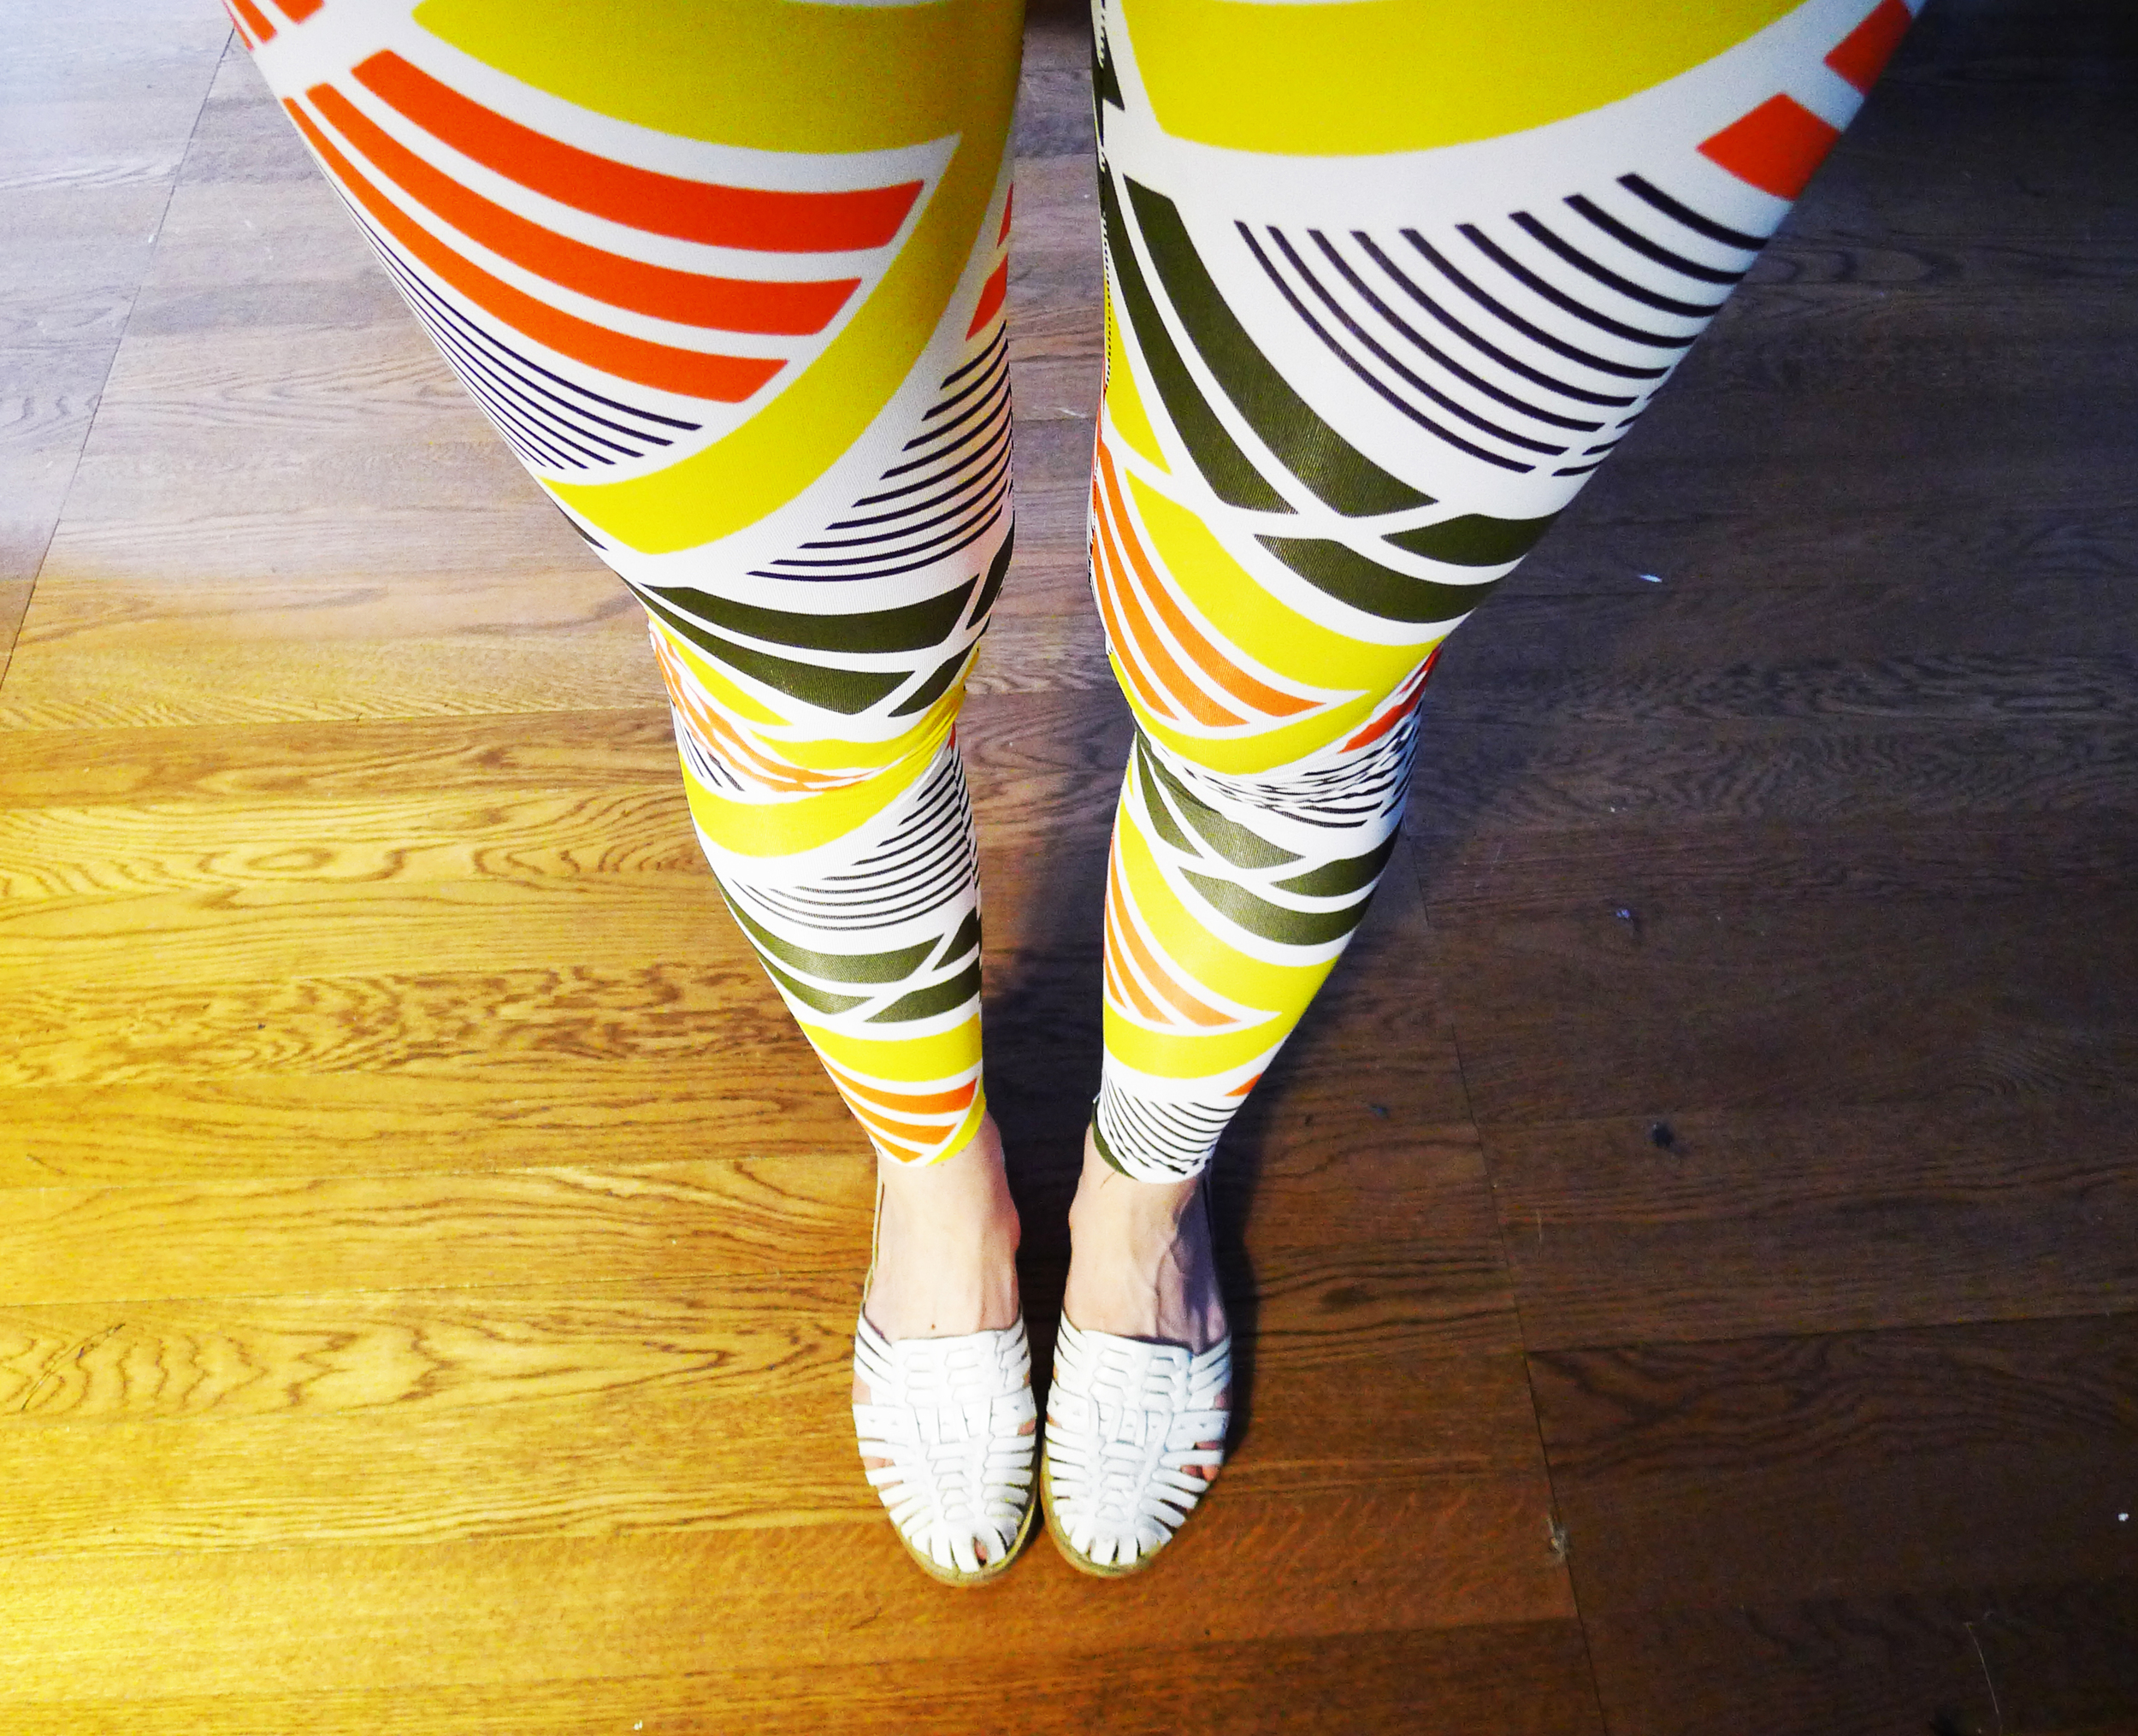 I also made these leggings today. They are my new favorite thing.